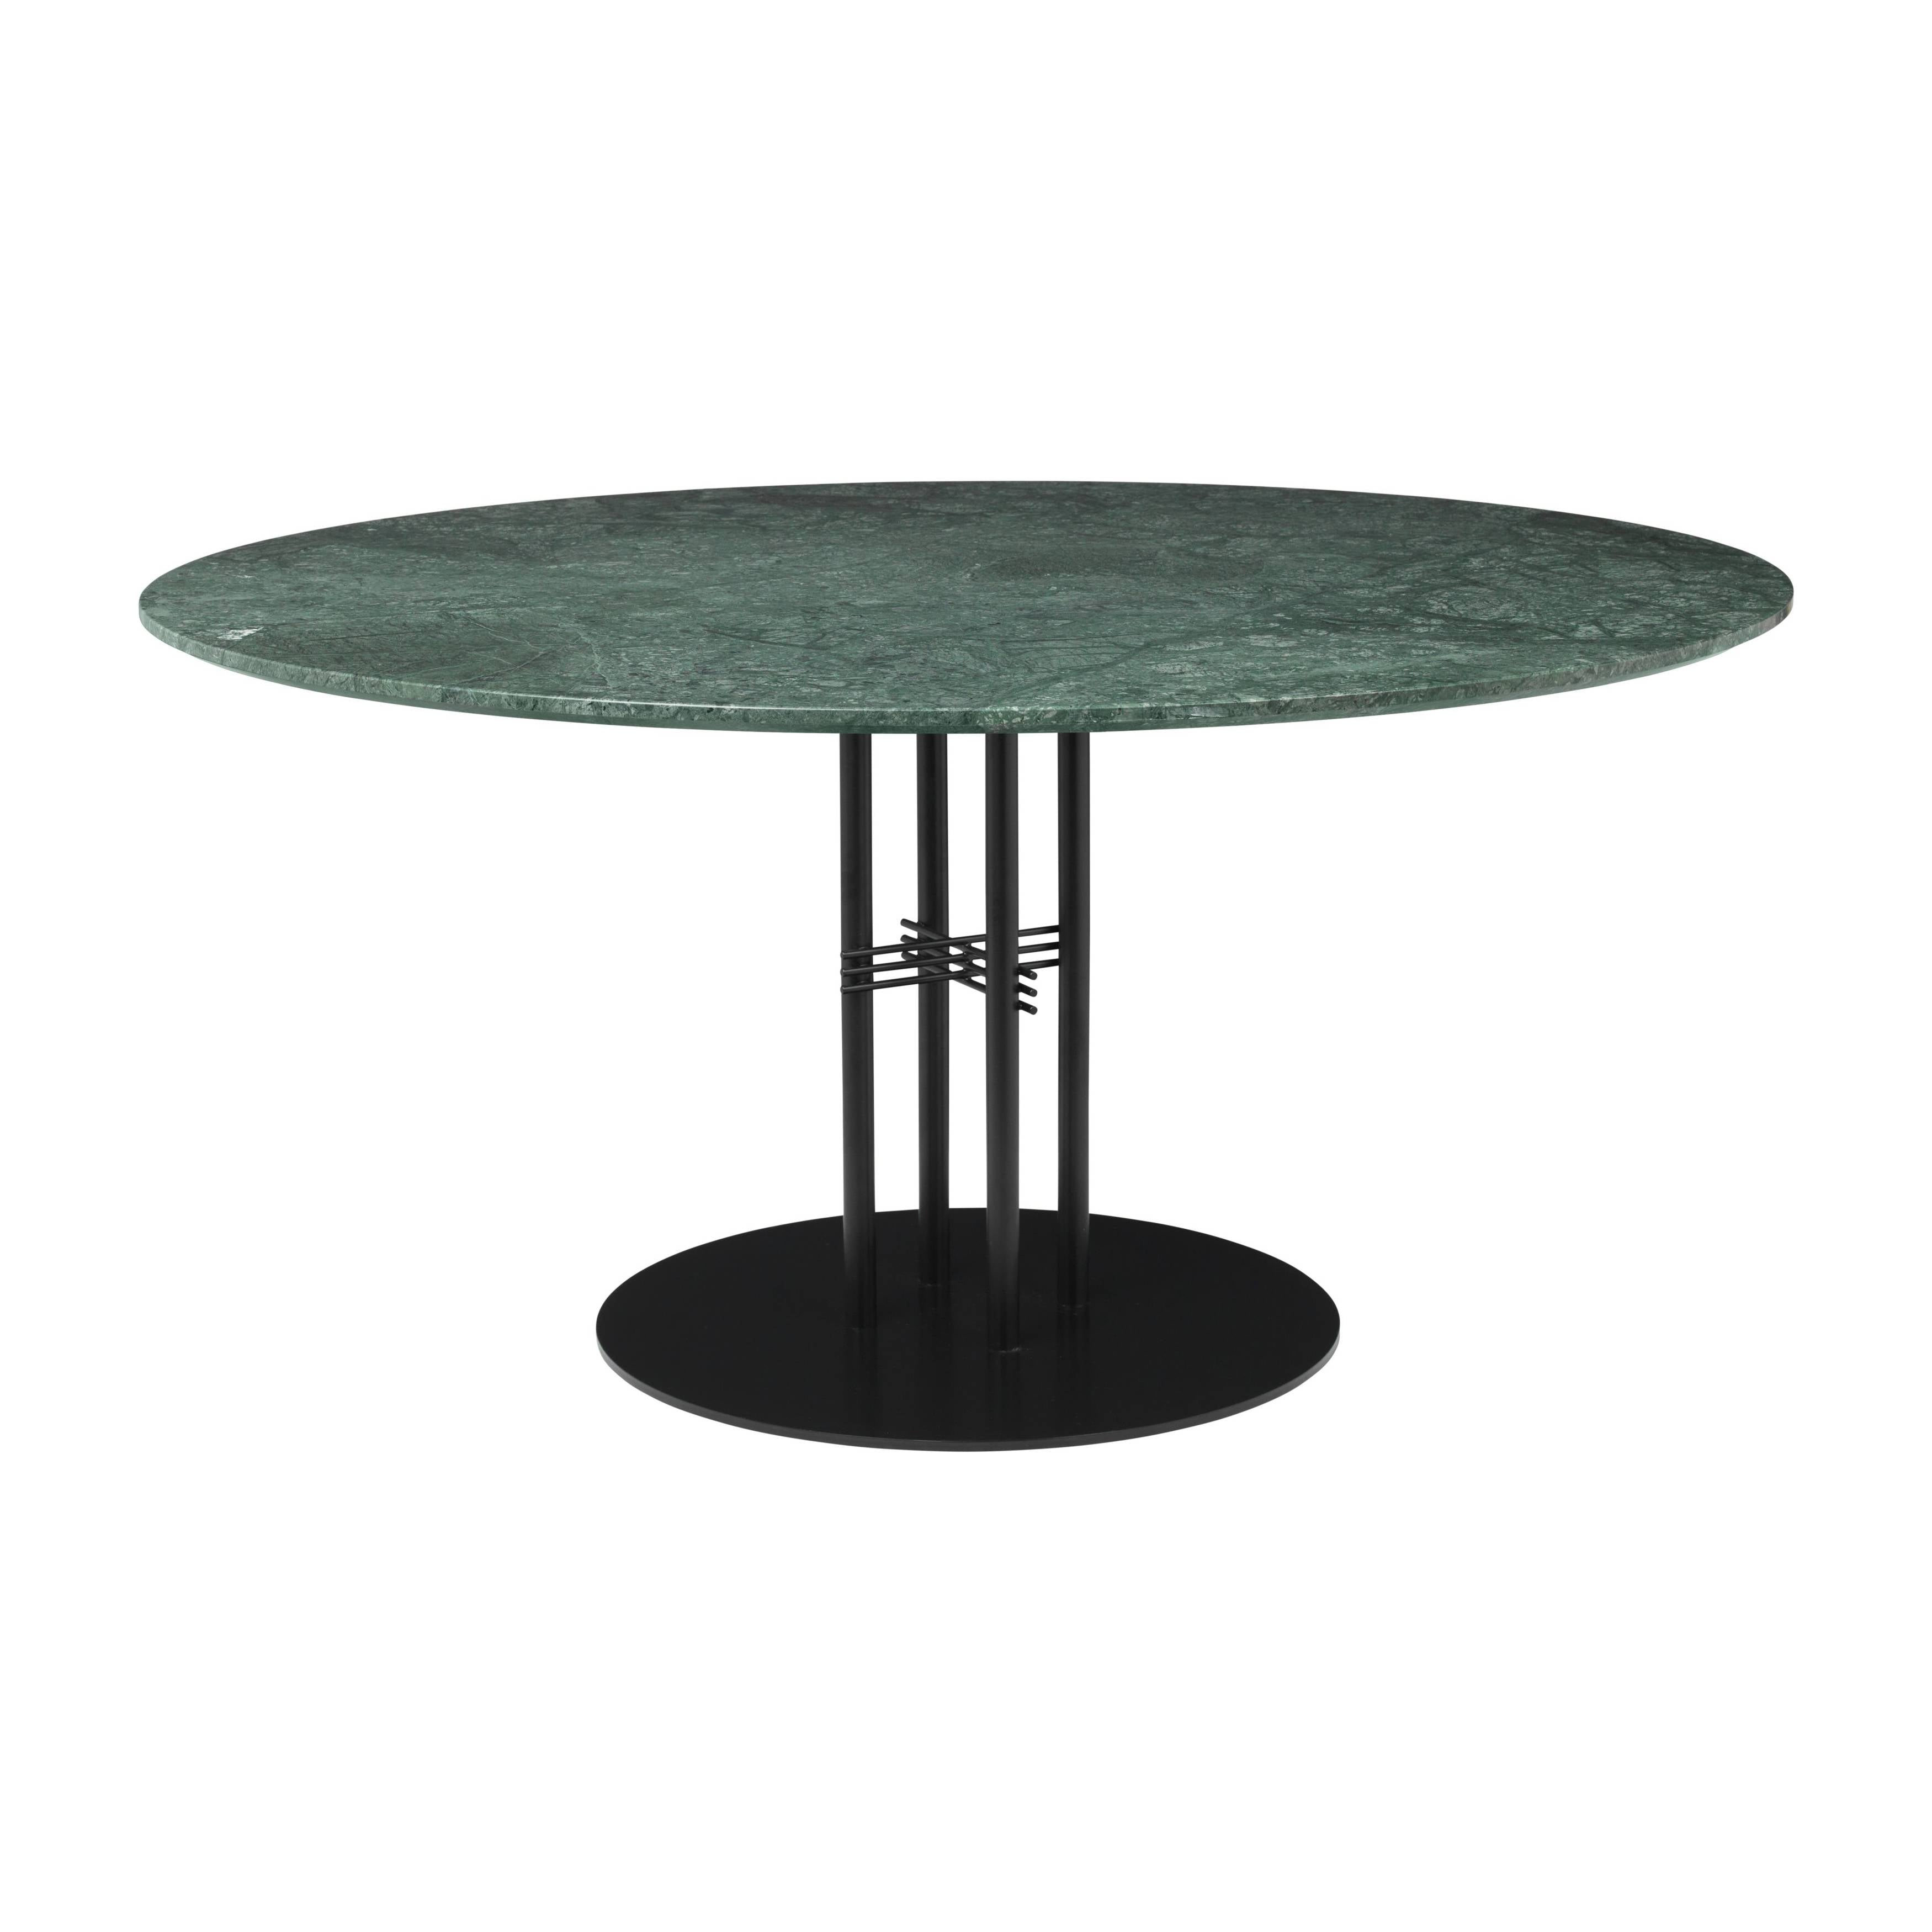 TS Column Dining Table: Extra Large + Black Base + Green Gautemala Marble